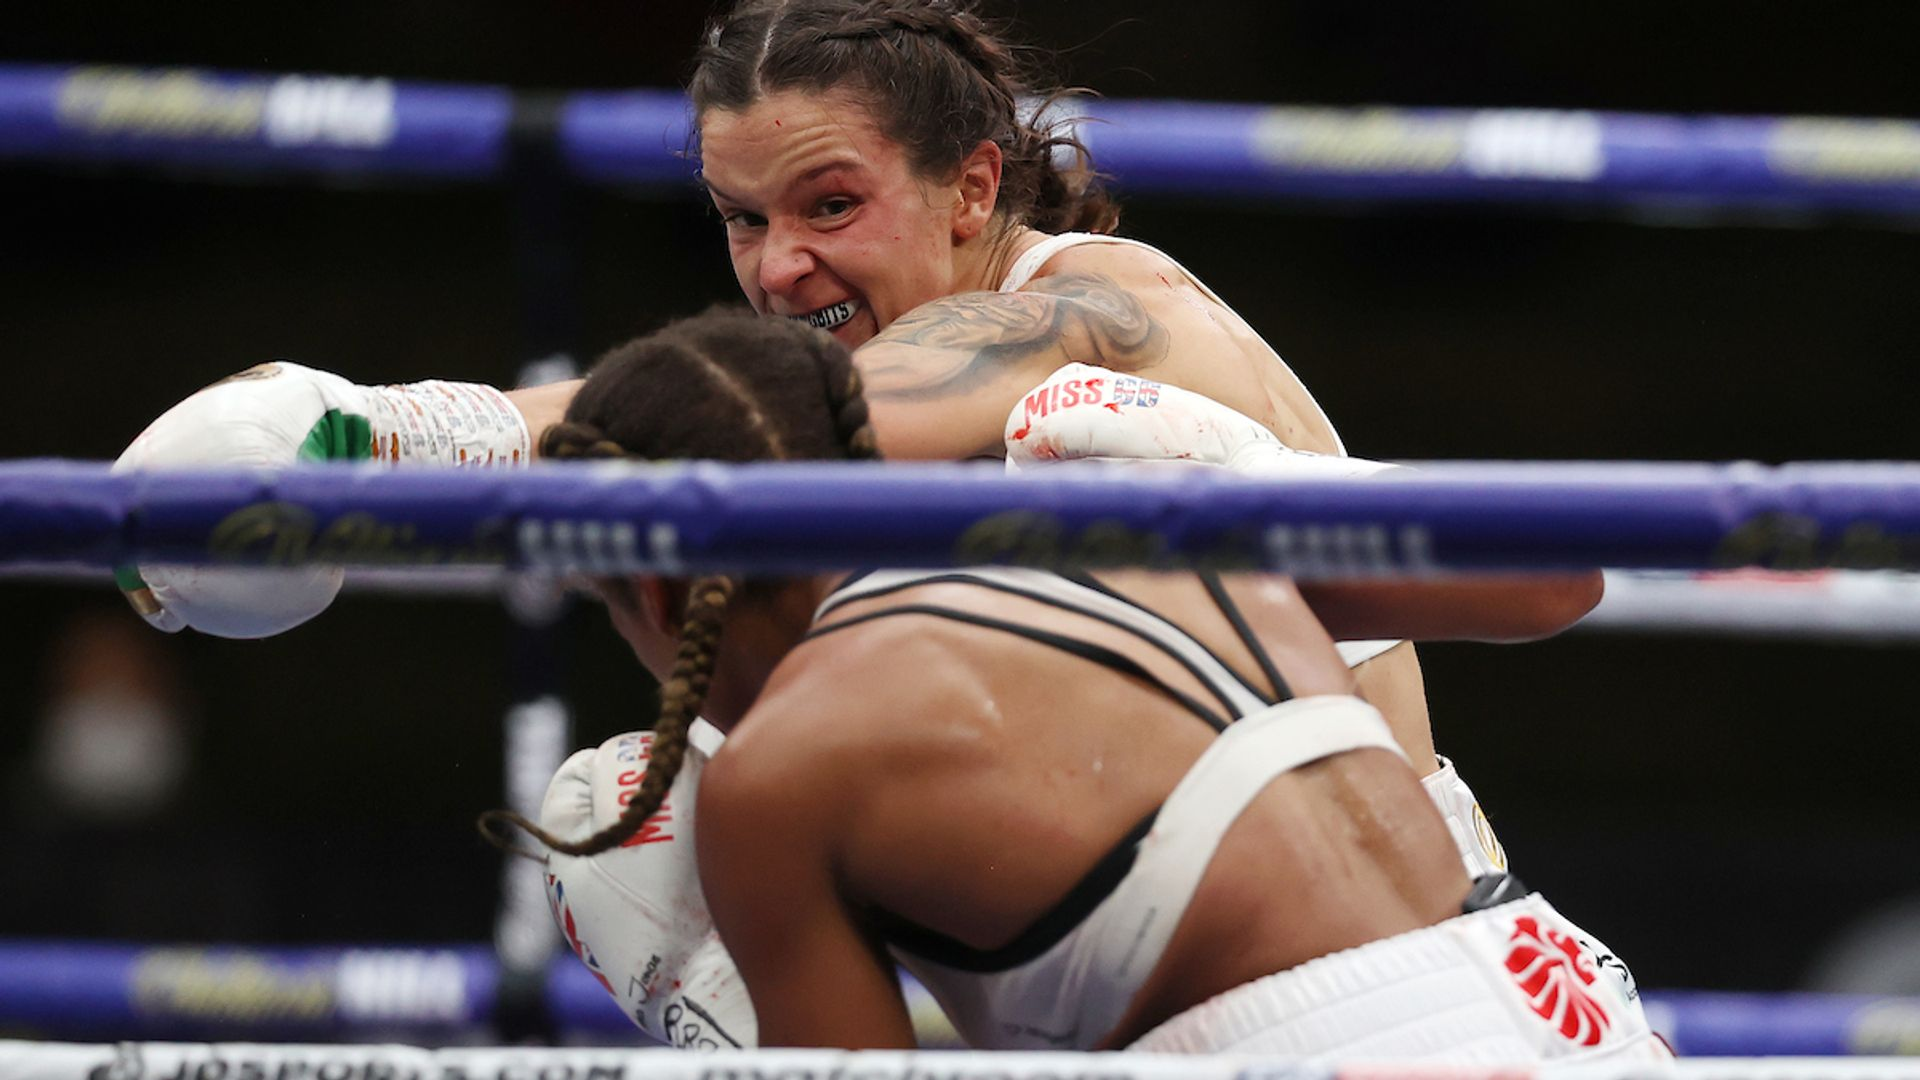 Harper retains title after thrilling draw - sky sports